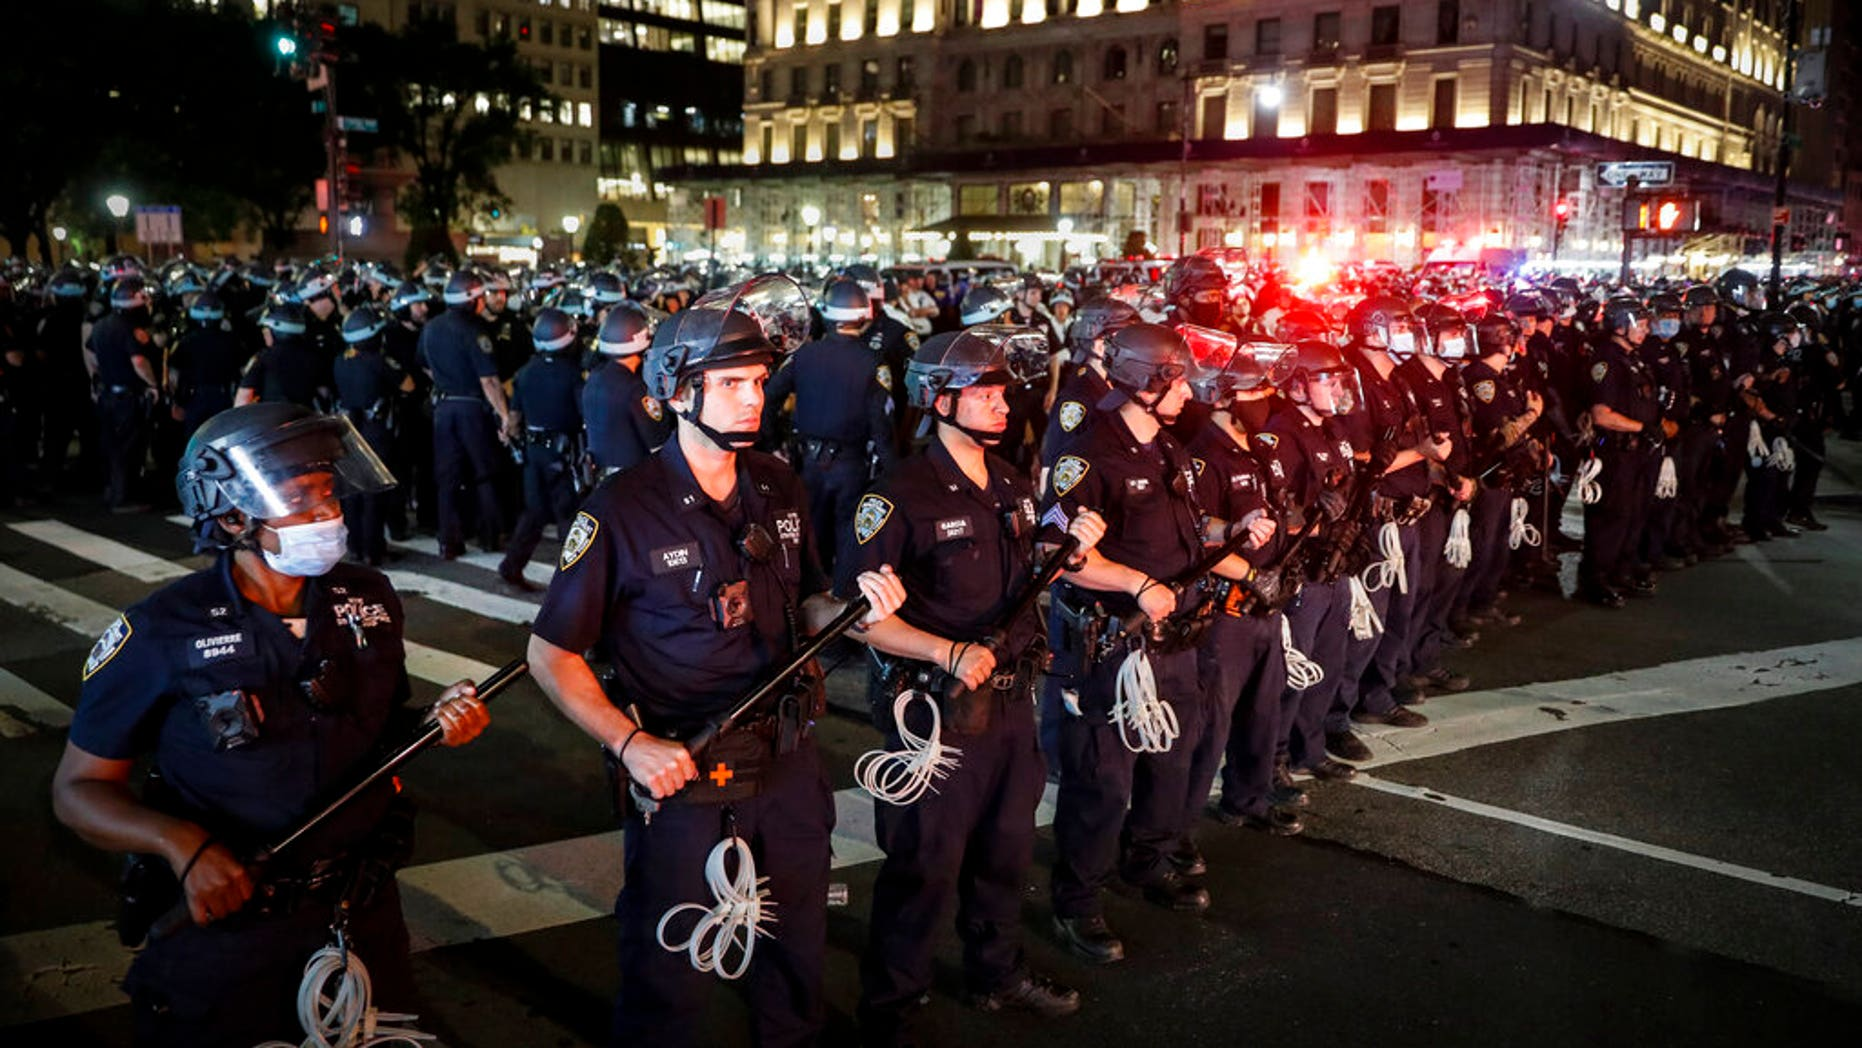 New York Police Department officers stand in formation after arresting multiple protesters marching after curfew on Fifth Avenue. (AP Photo/John Minchillo)